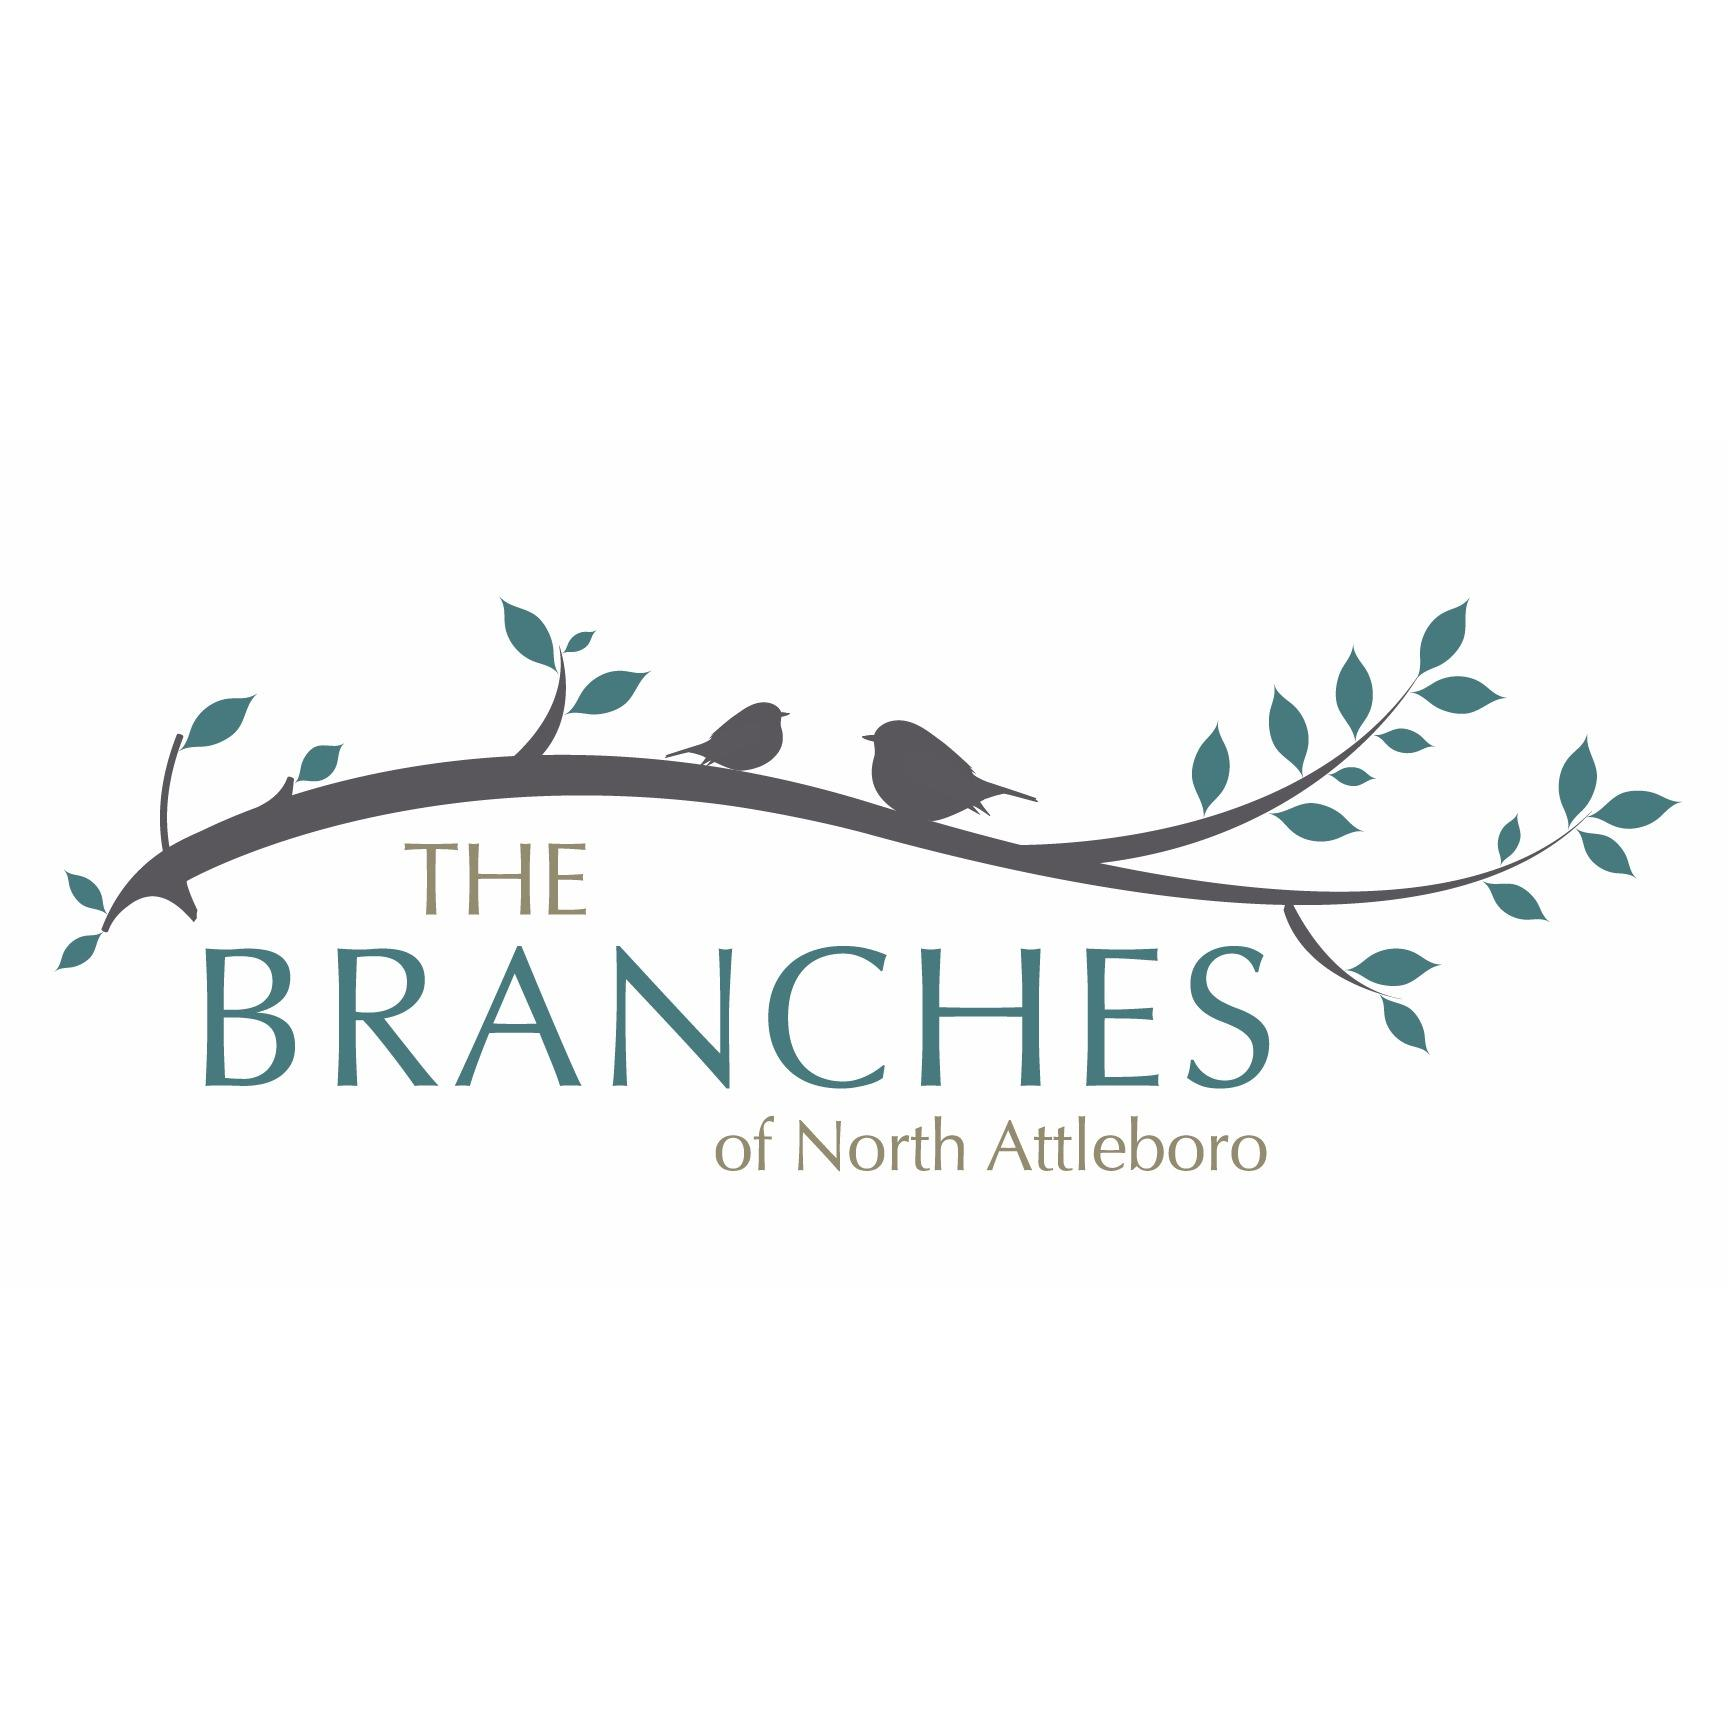 The Branches of North Attleboro image 1